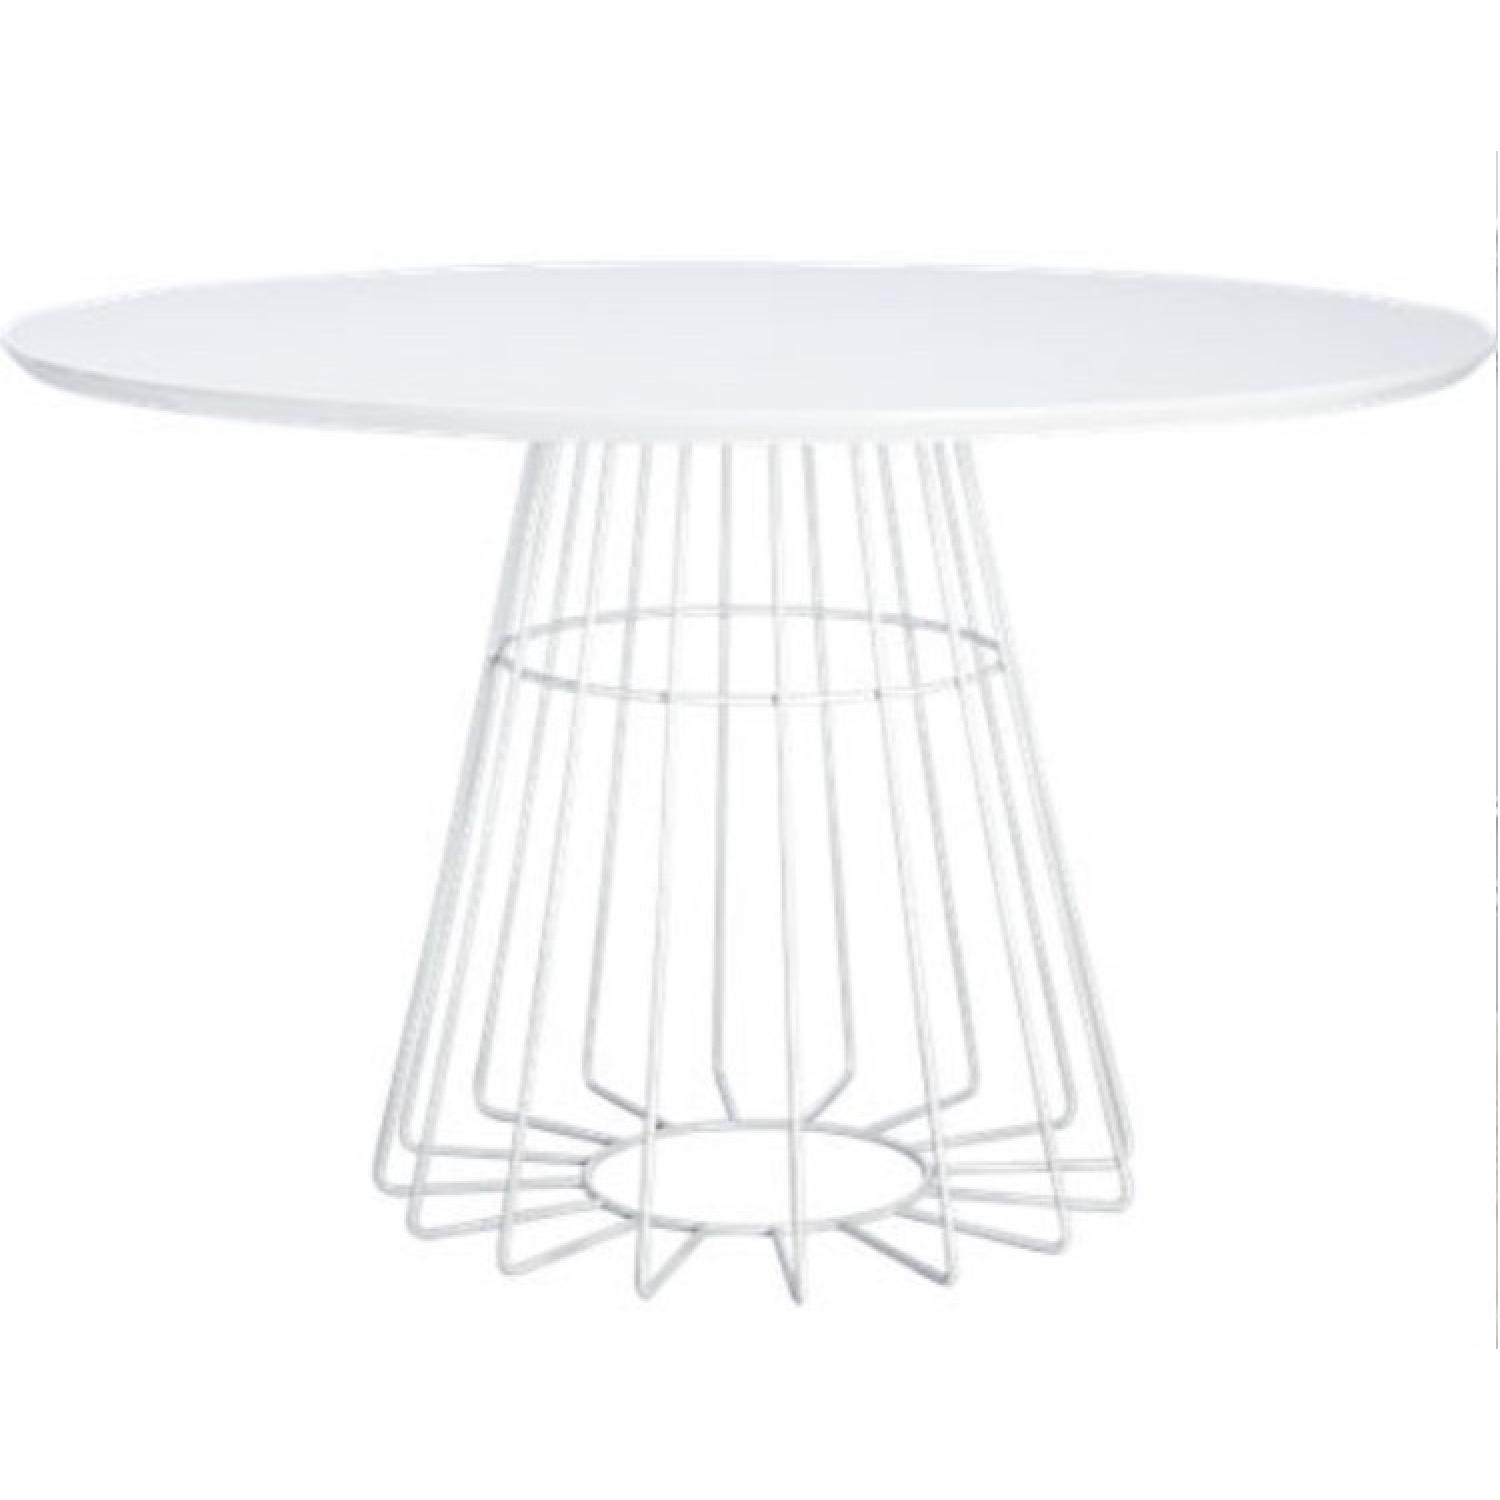 CB2 Compass Dining Table - image-0